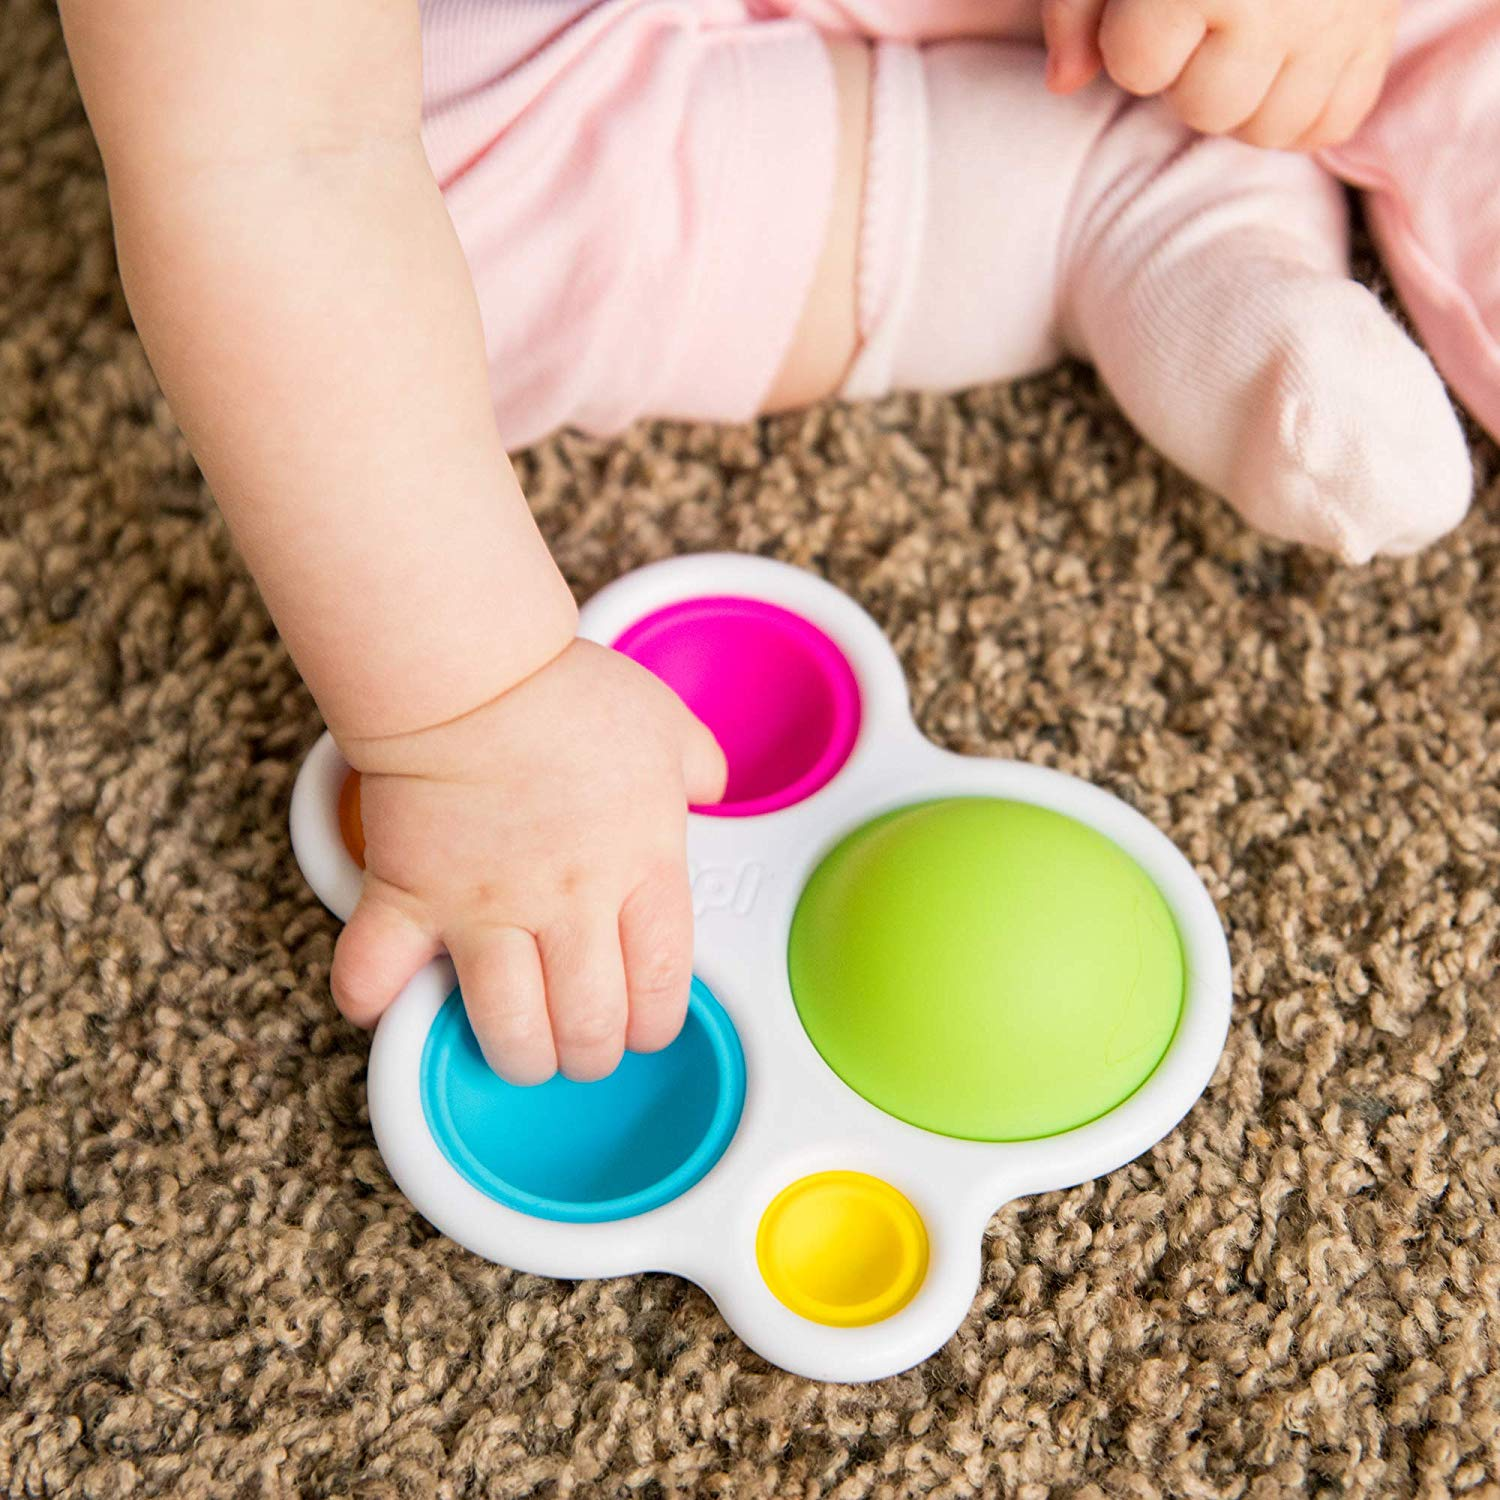 Dimpl is perfect for the little fingers to poke the silicone bubbles.